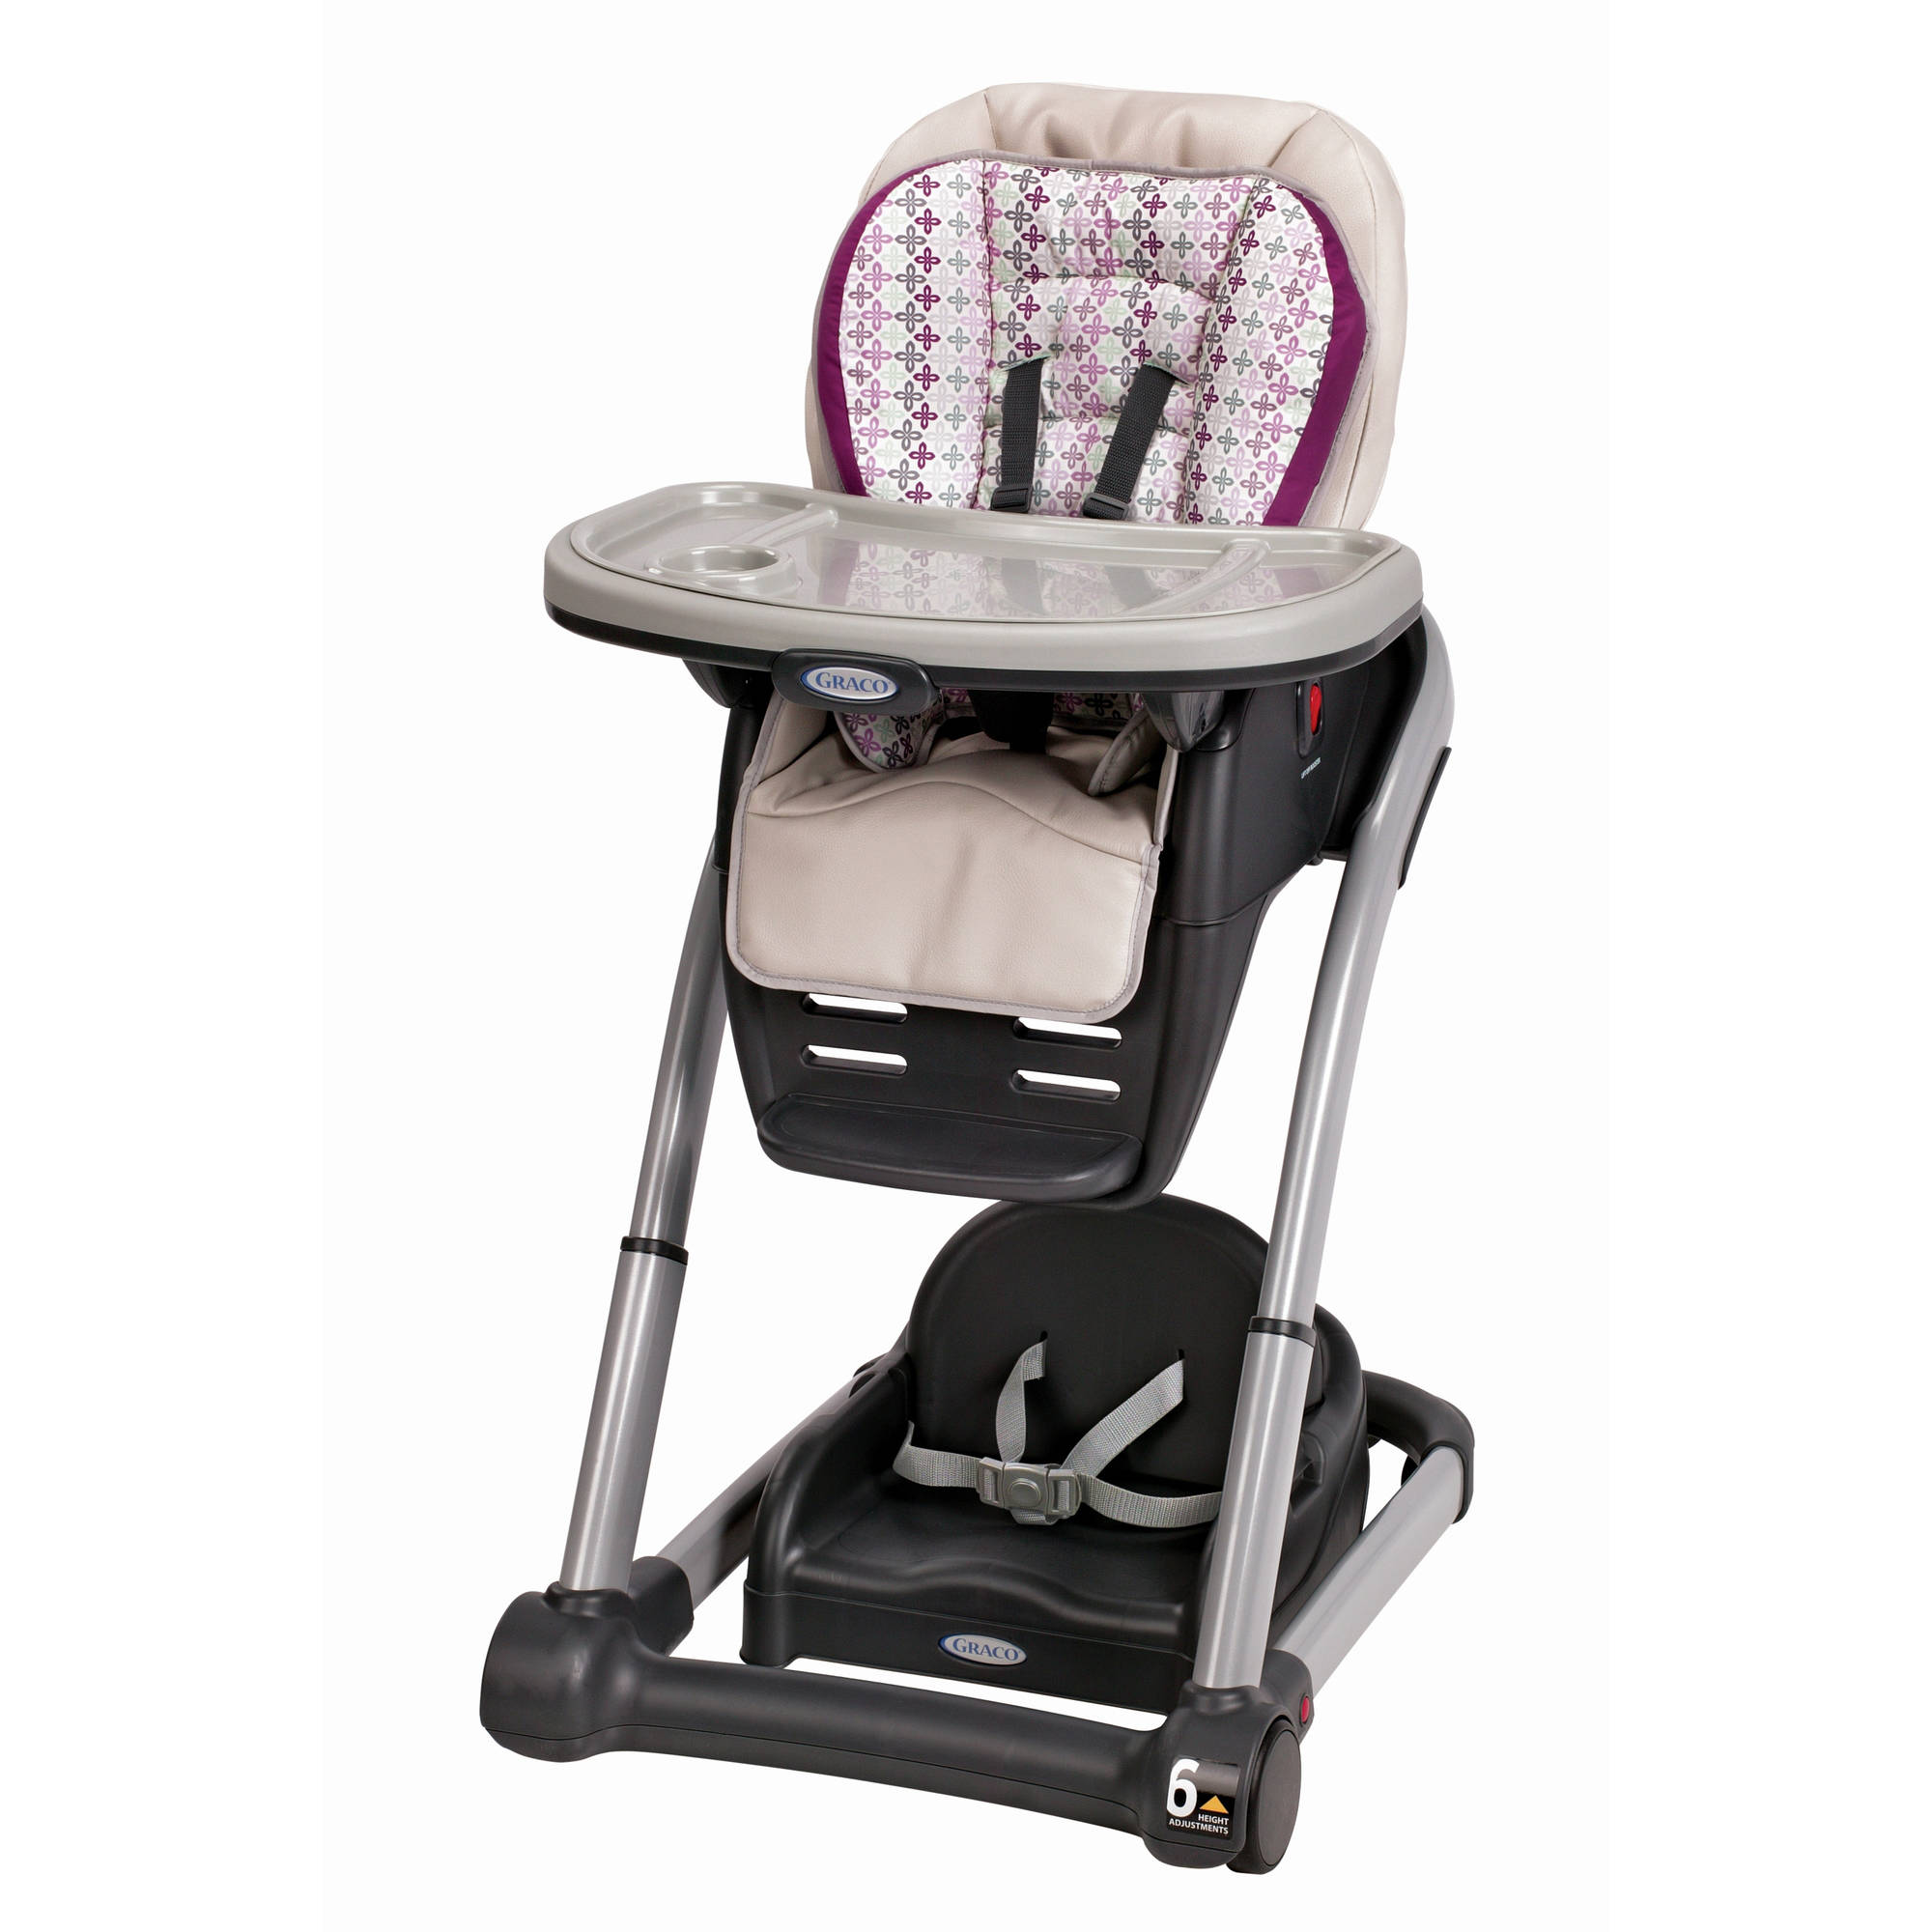 Graco Blossom 4-in-1 High Chair, Nyssa by Graco